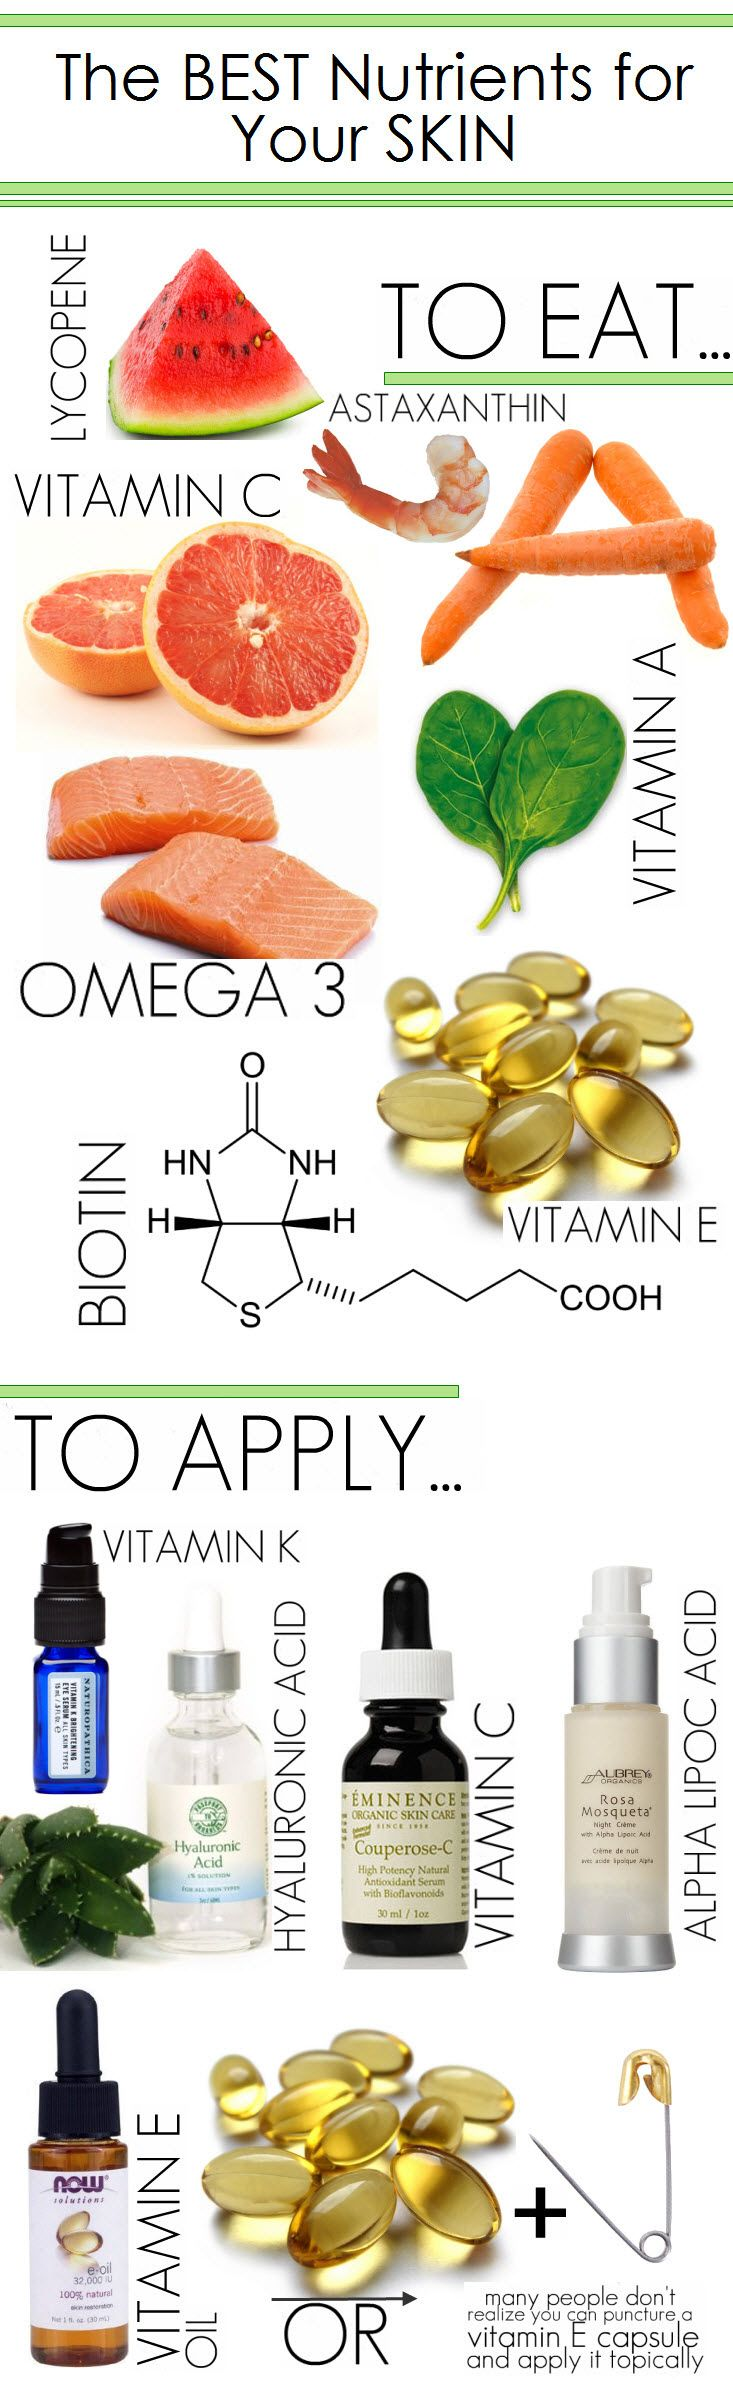 Top 10 nutrients for skin health and why they're oh-so-good for you